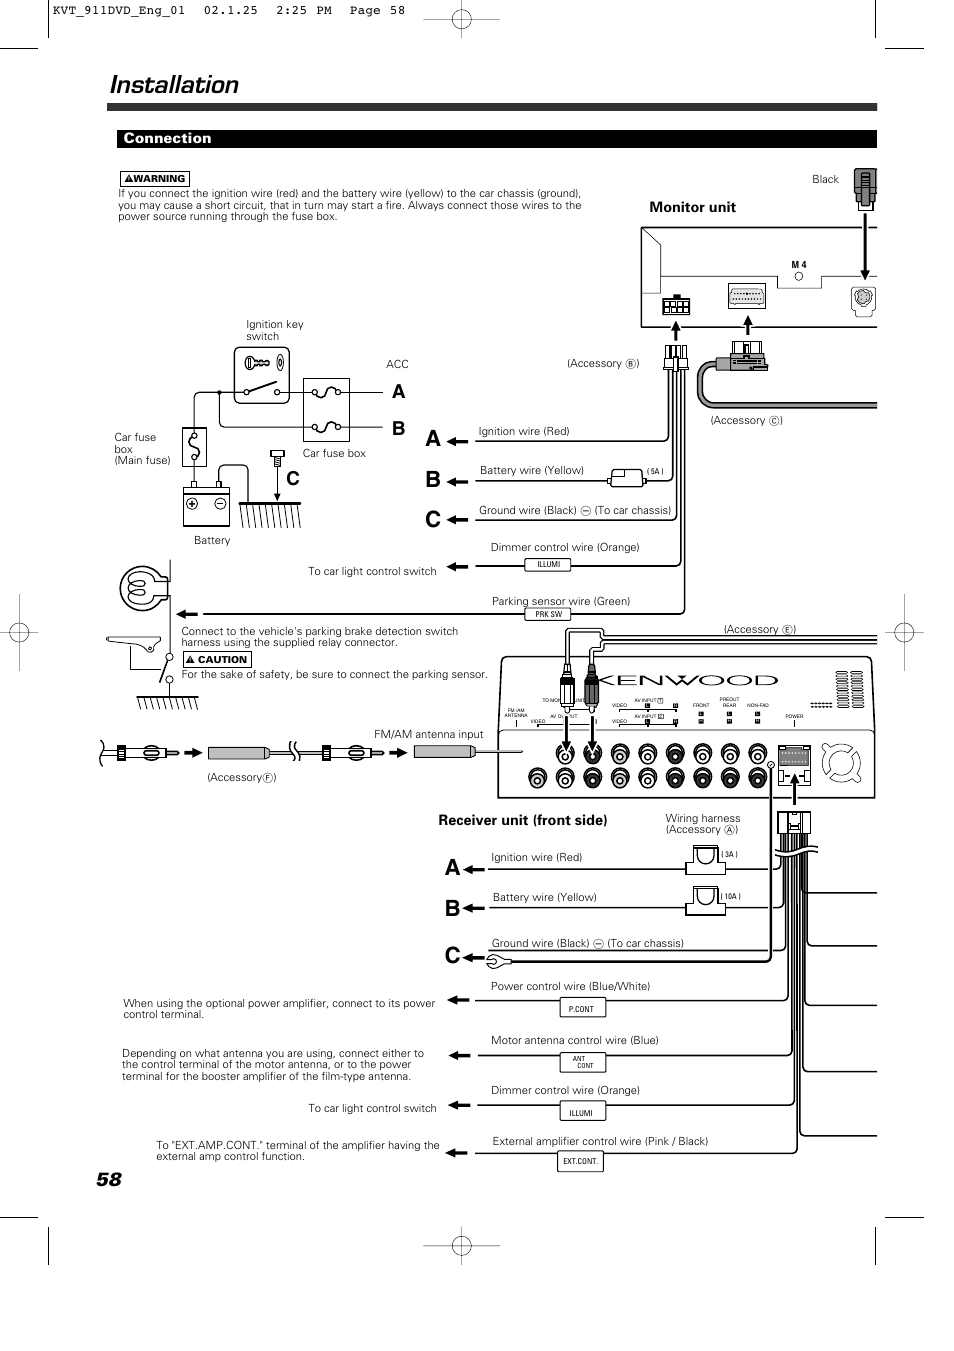 Kenwood Kvt 911dvd Wiring Harness : 33 Wiring Diagram